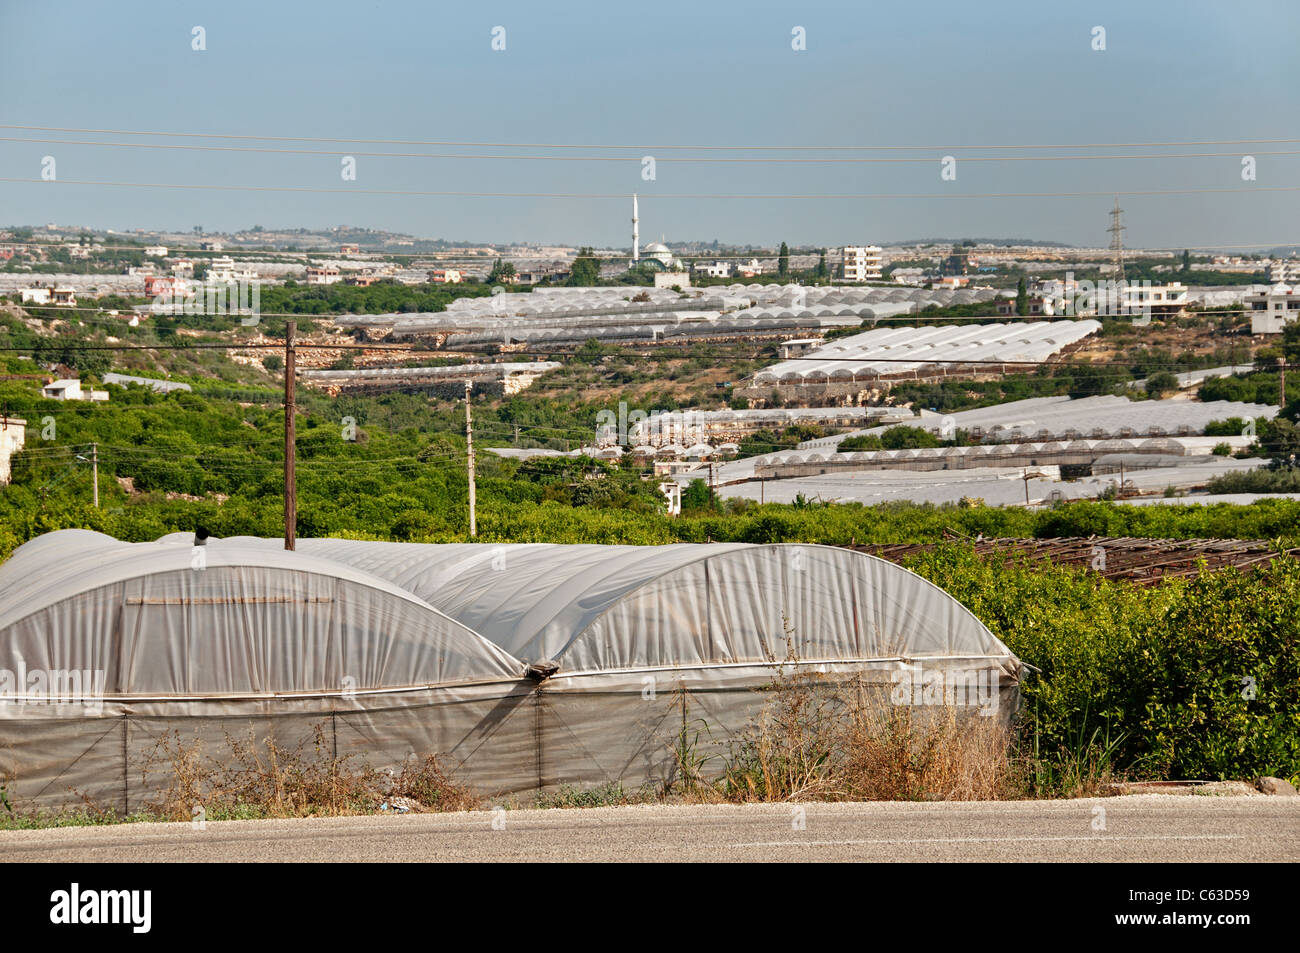 South Turkey Greenhouse Glasshouse Agriculture Farm - Stock Image